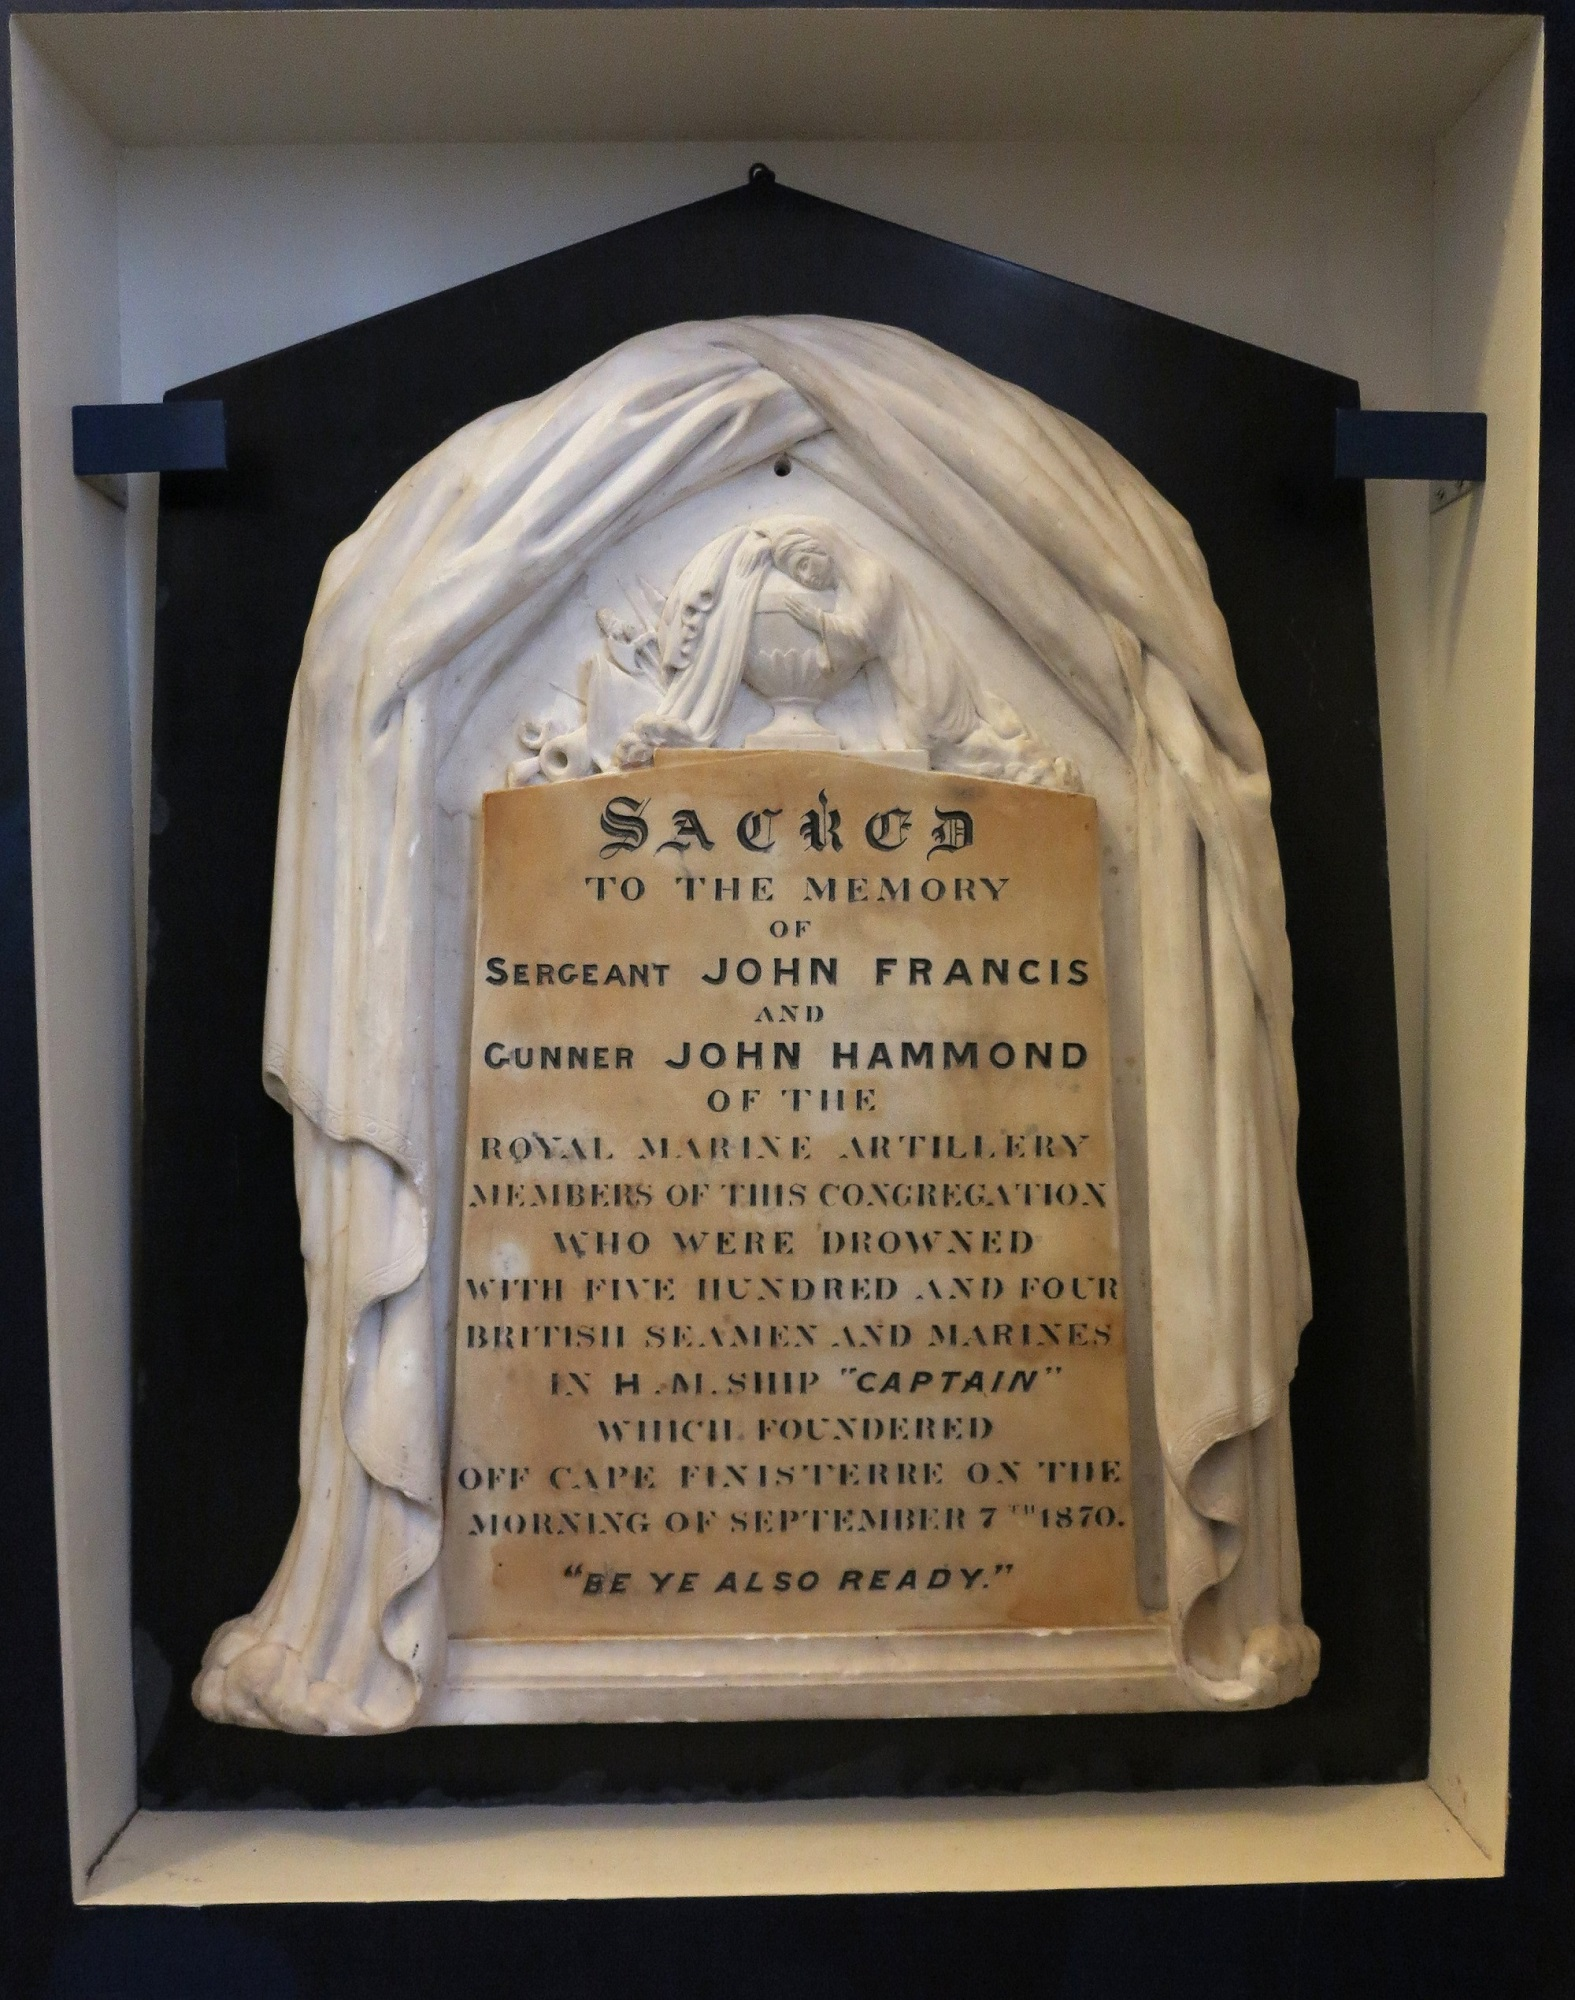 Memorial plaque to Sergeant John Francis and Gunner John Hammond